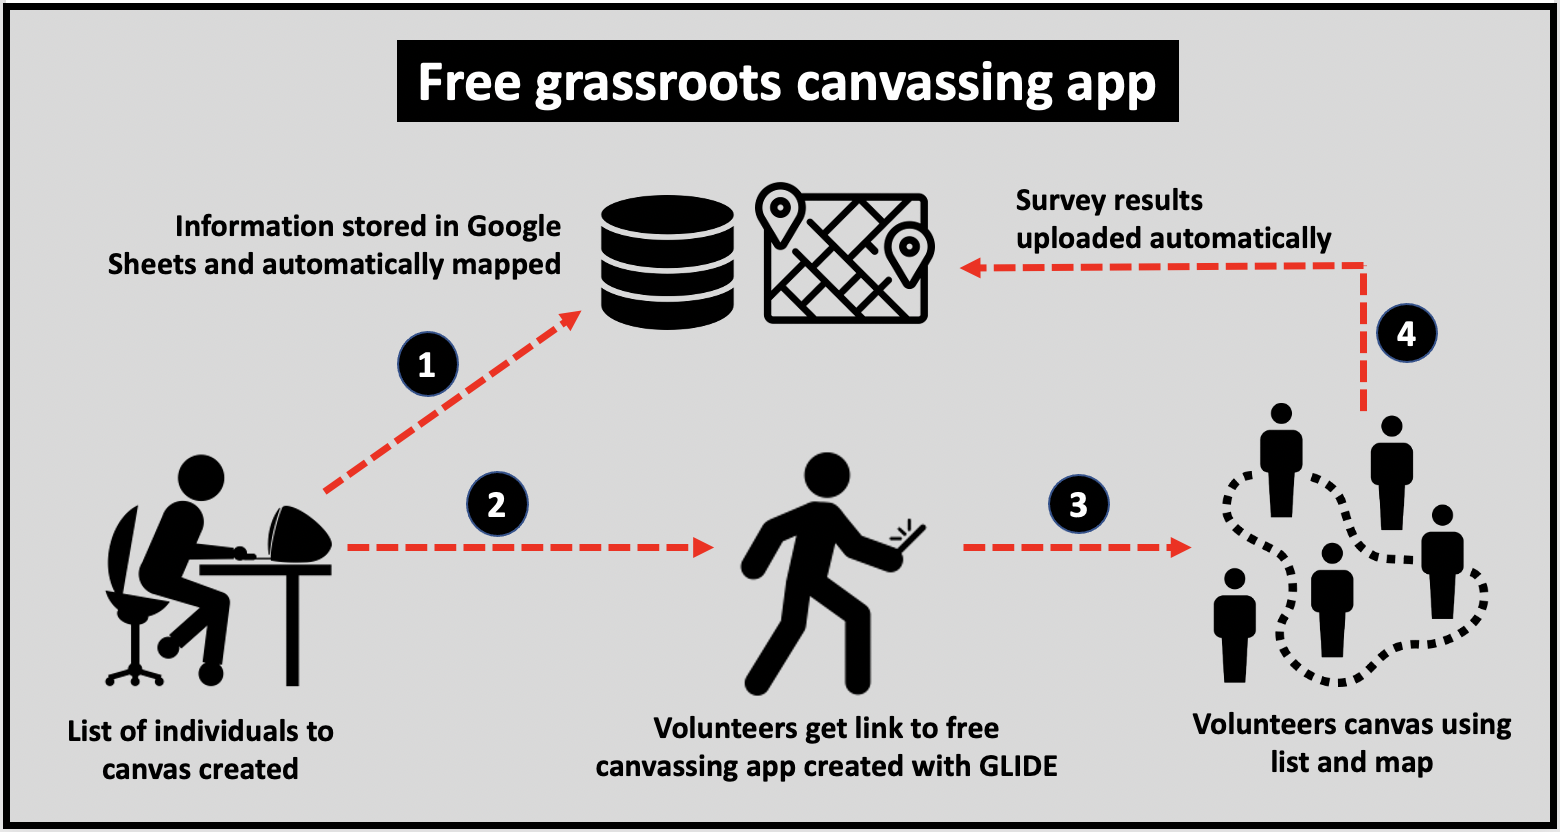 Grassroots canvassing made free and simple with solution built with Google Sheets and Glide Apps